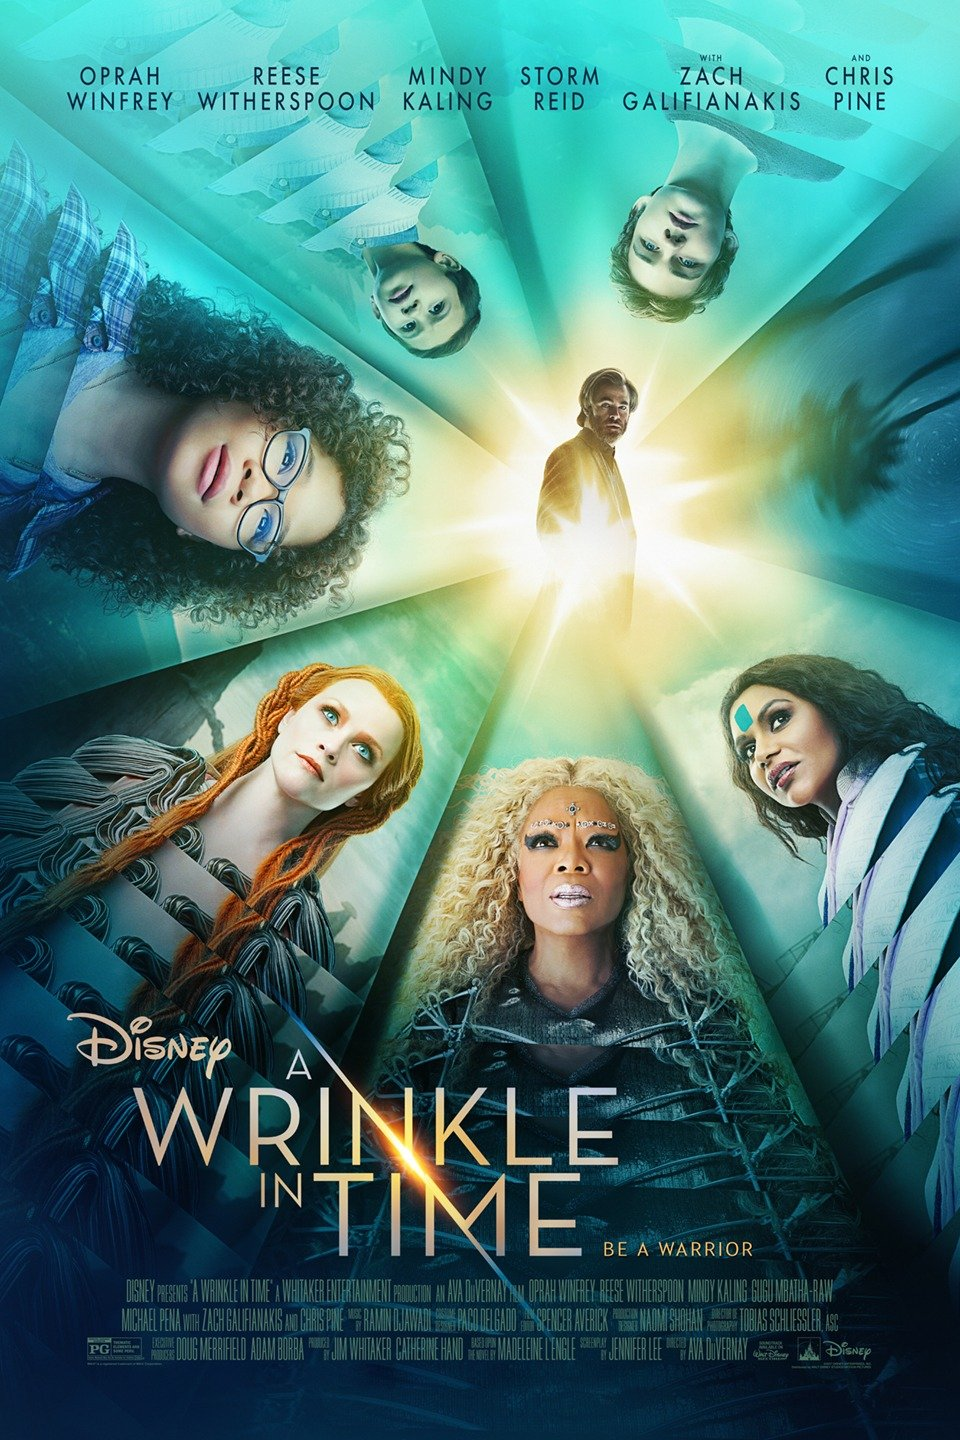 A Wrinkle in Time poster art